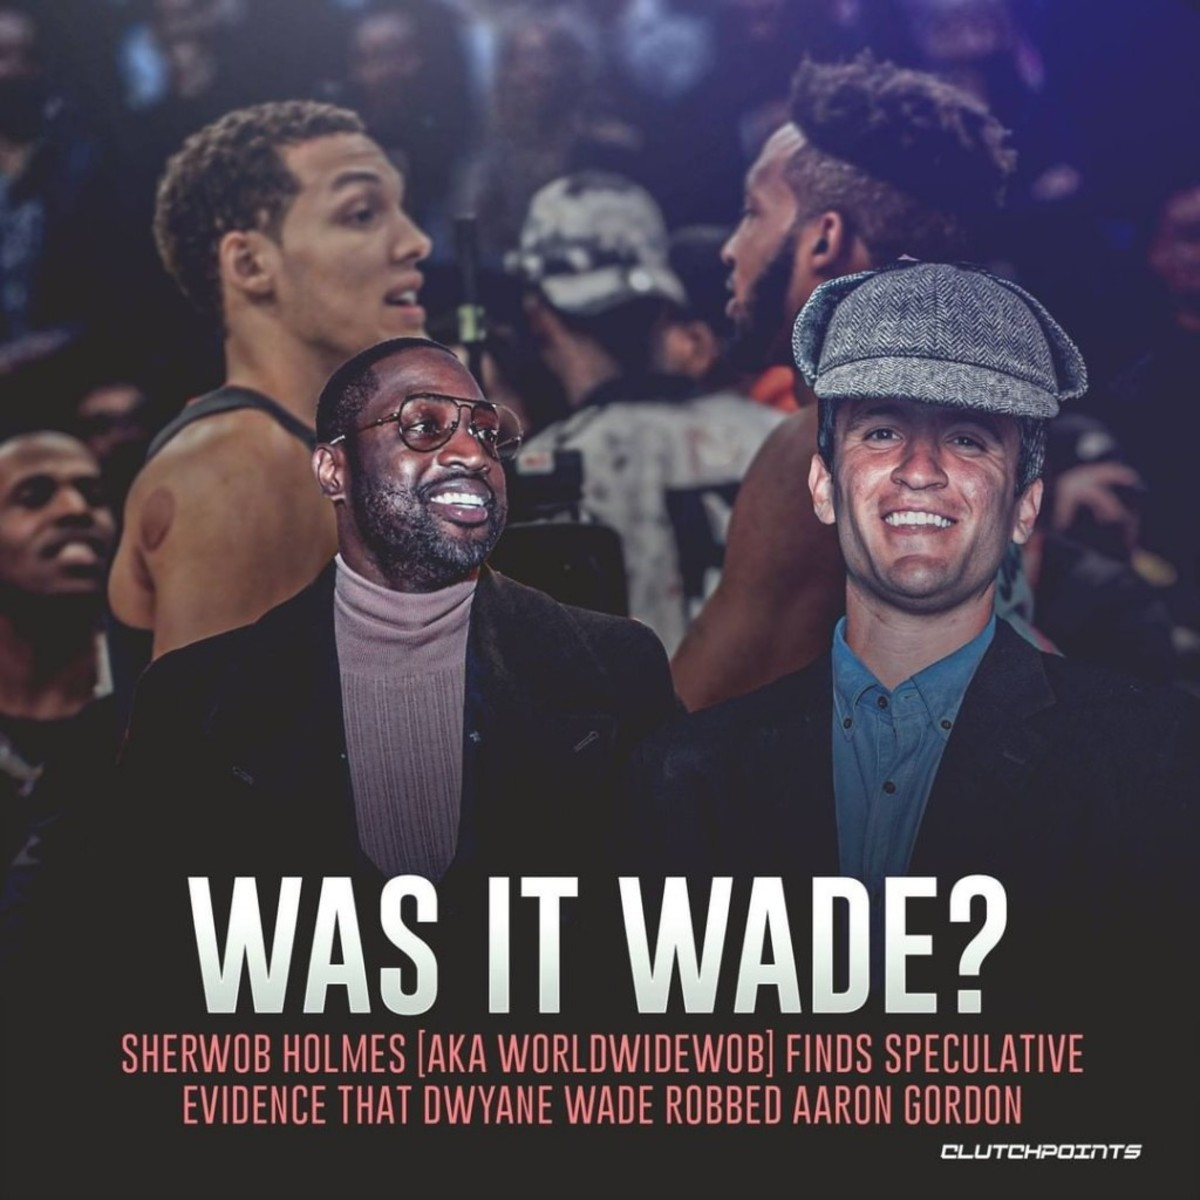 World Wide Wob Finds Evidence That Dwyane Wade Was The One Who Robbed Aaron Gordon